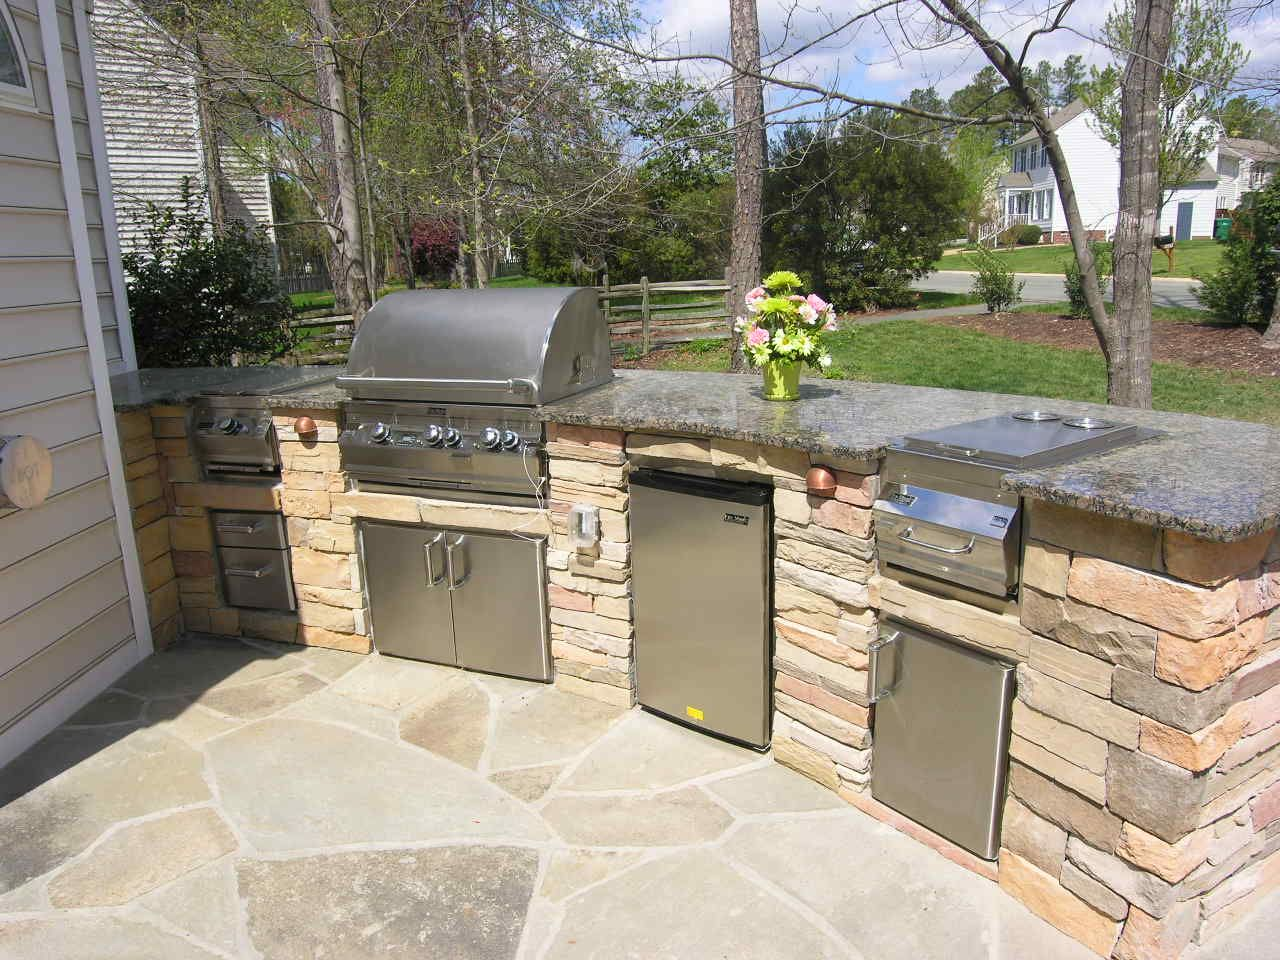 outdoor kitchen design ideas backyard backyard patio with kitchen ideas this custom outdoor 850